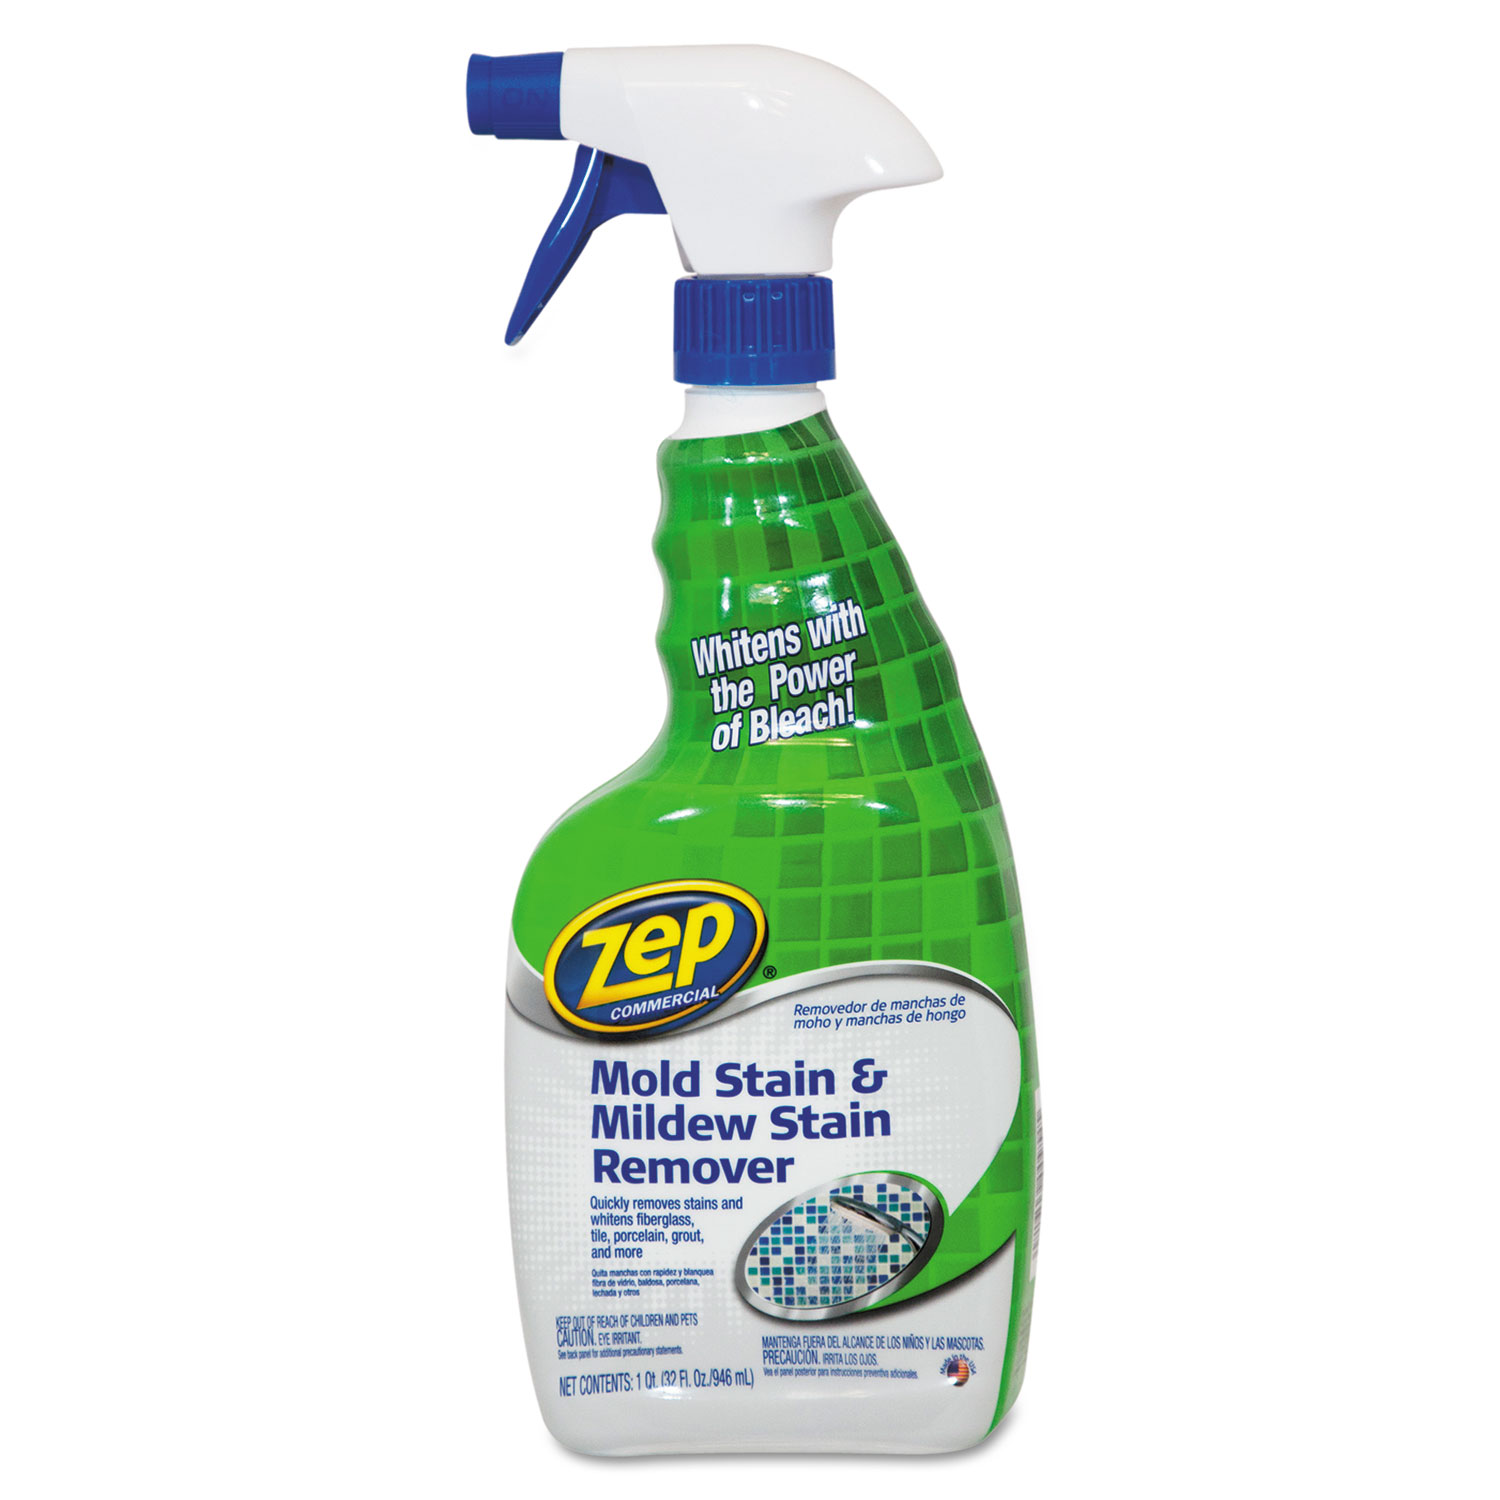 Mold Stain And Mildew Stain Remover By Zep Commercial